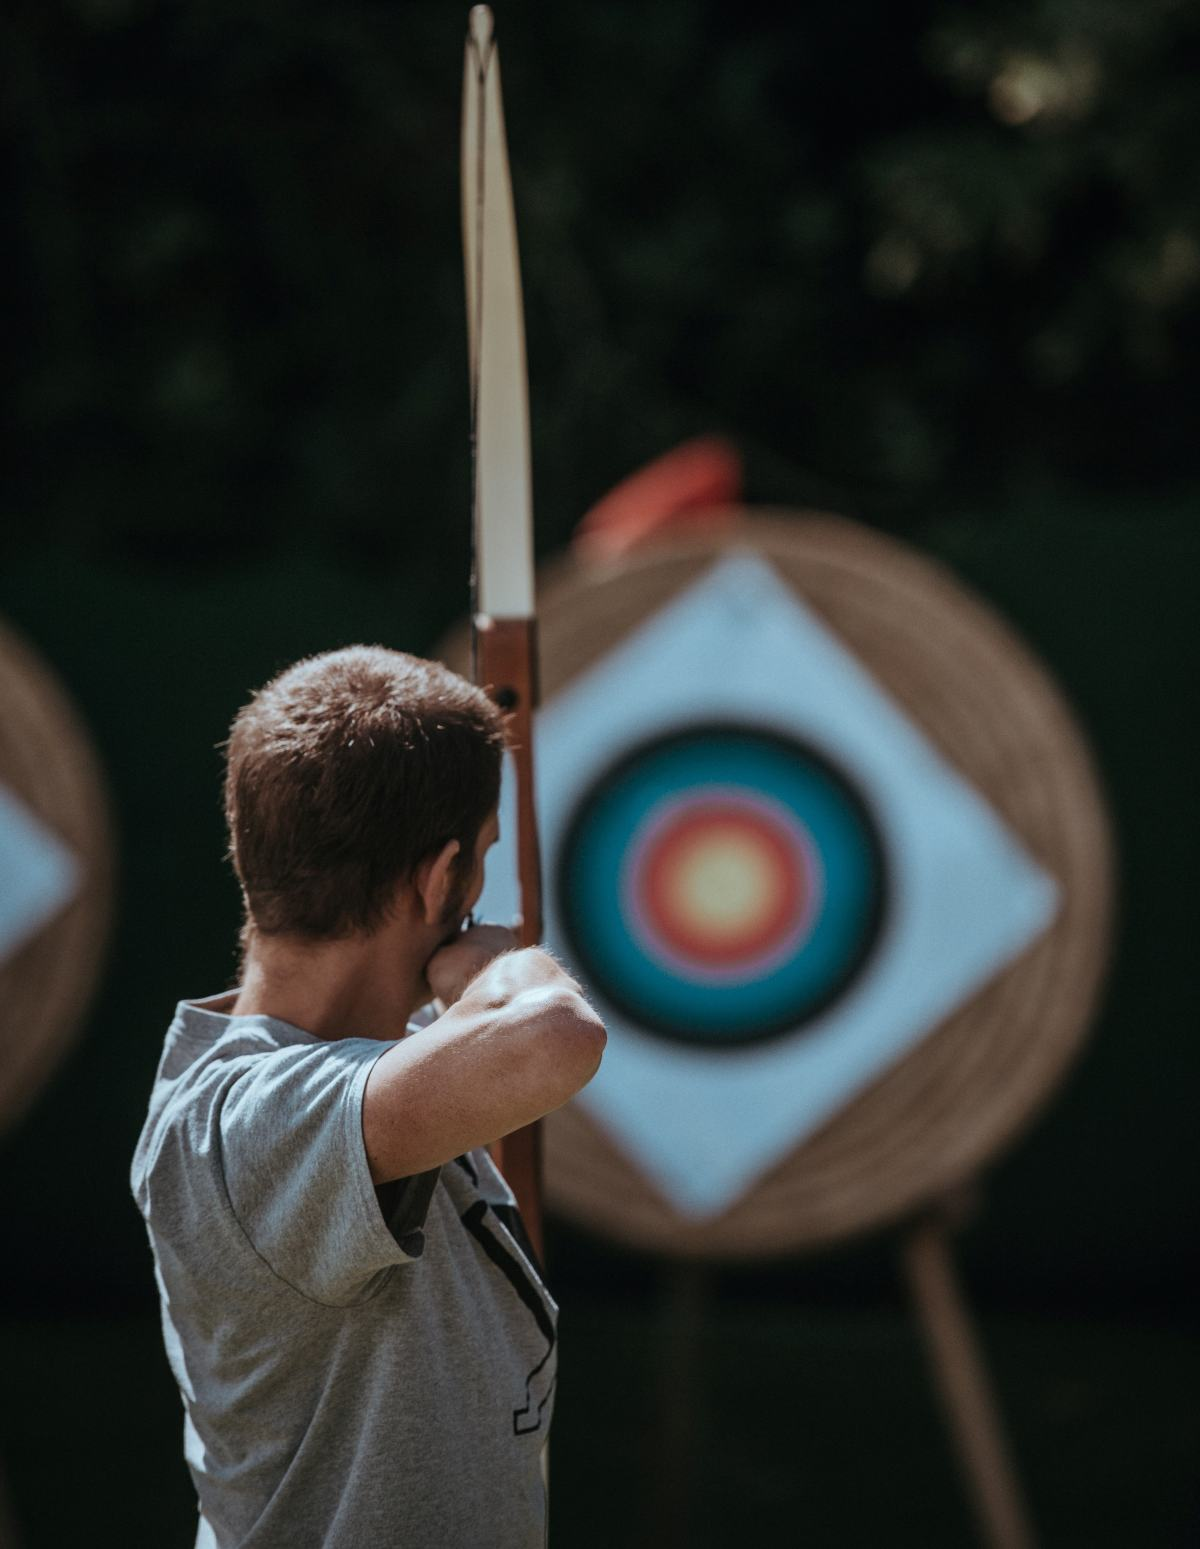 GRE scores are a targeting exercise